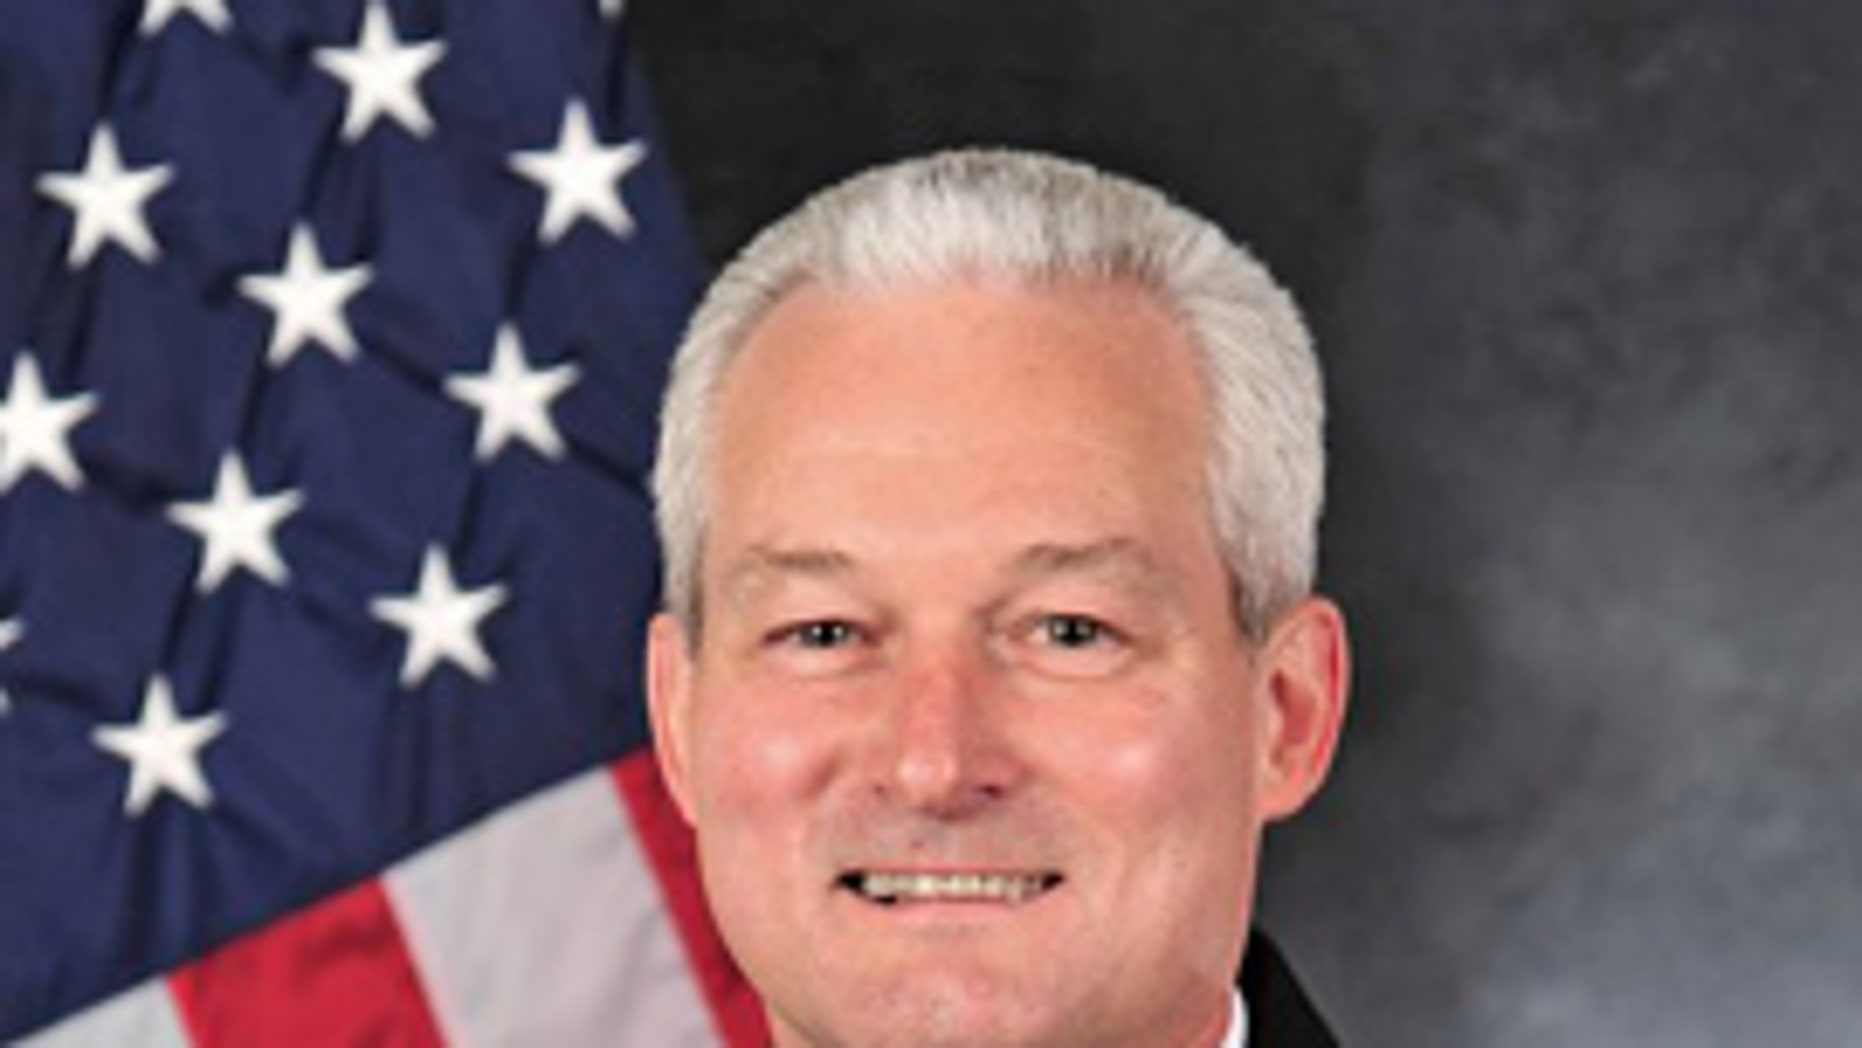 This undated photo shows Rear Admiral David Baucom, who was fired from his job as the director of Strategy, Policy, Capabilities, and Logistics at U.S. Transportation Command in October after an investigation into his misbehavior in April. (U.S. Navy)